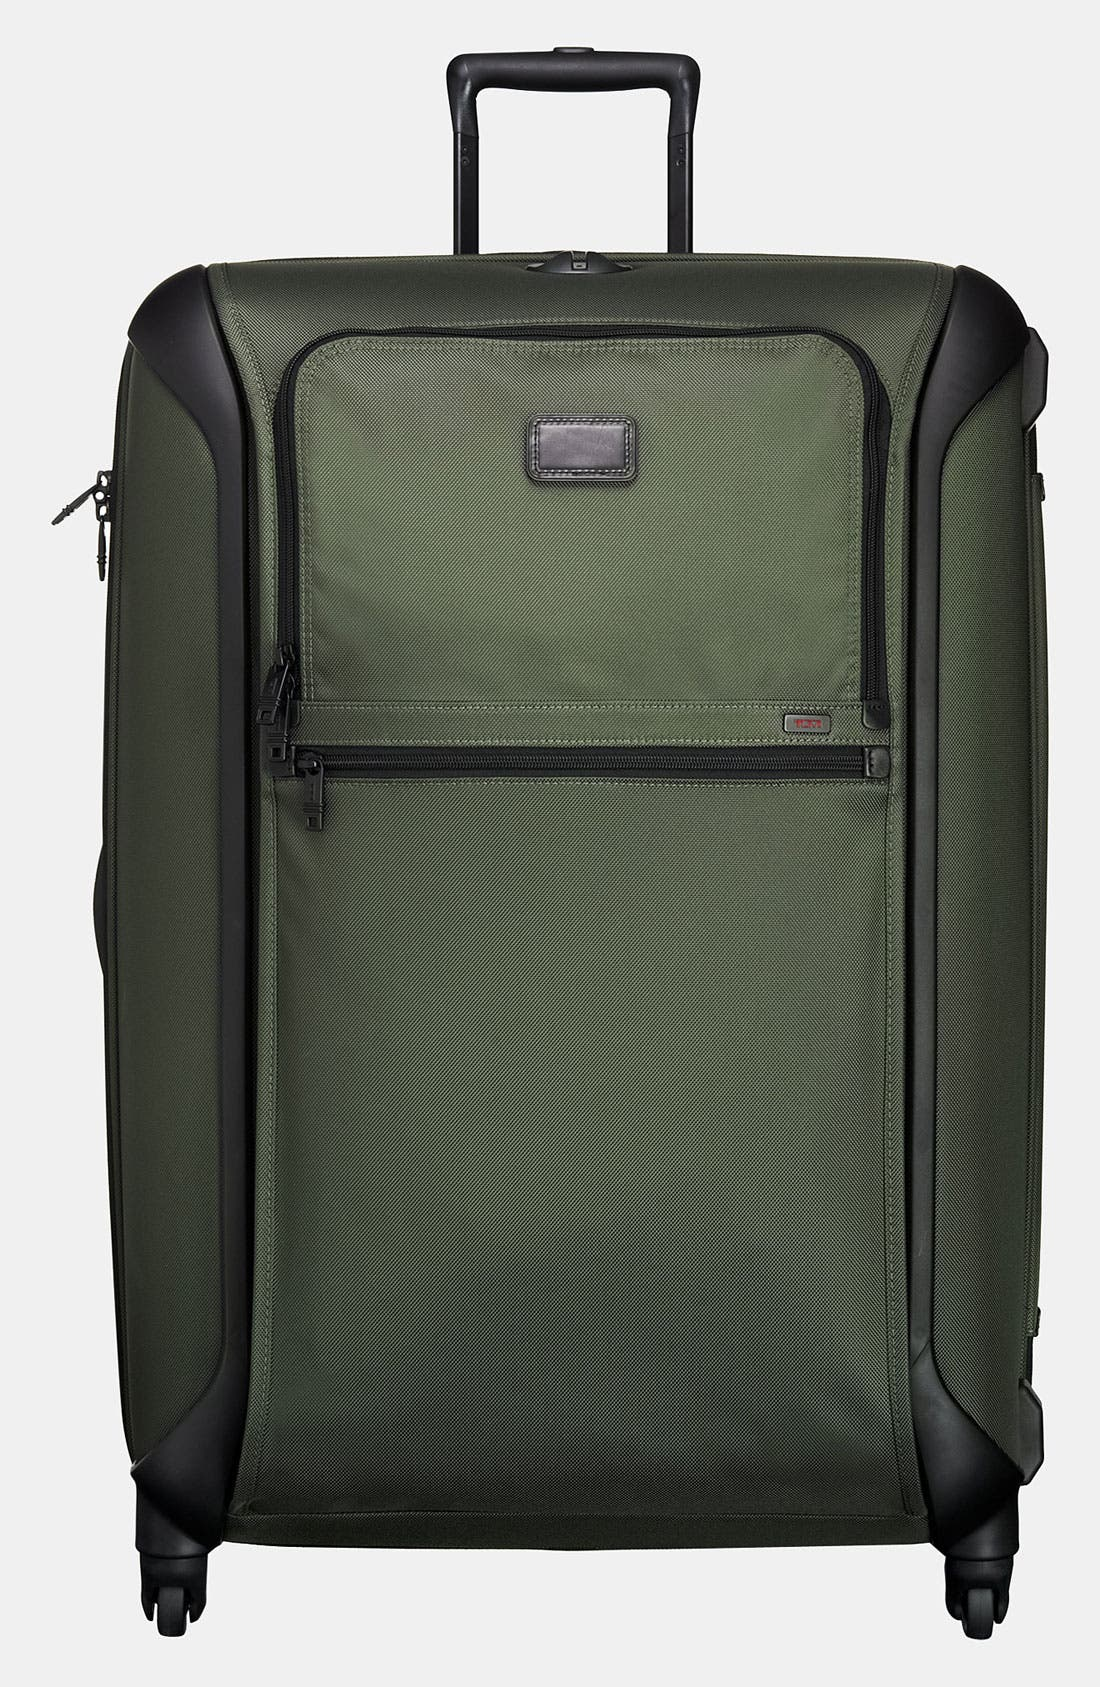 Main Image - Tumi 'Alpha' Lightweight Extended Trip Packing Case (32 Inch)